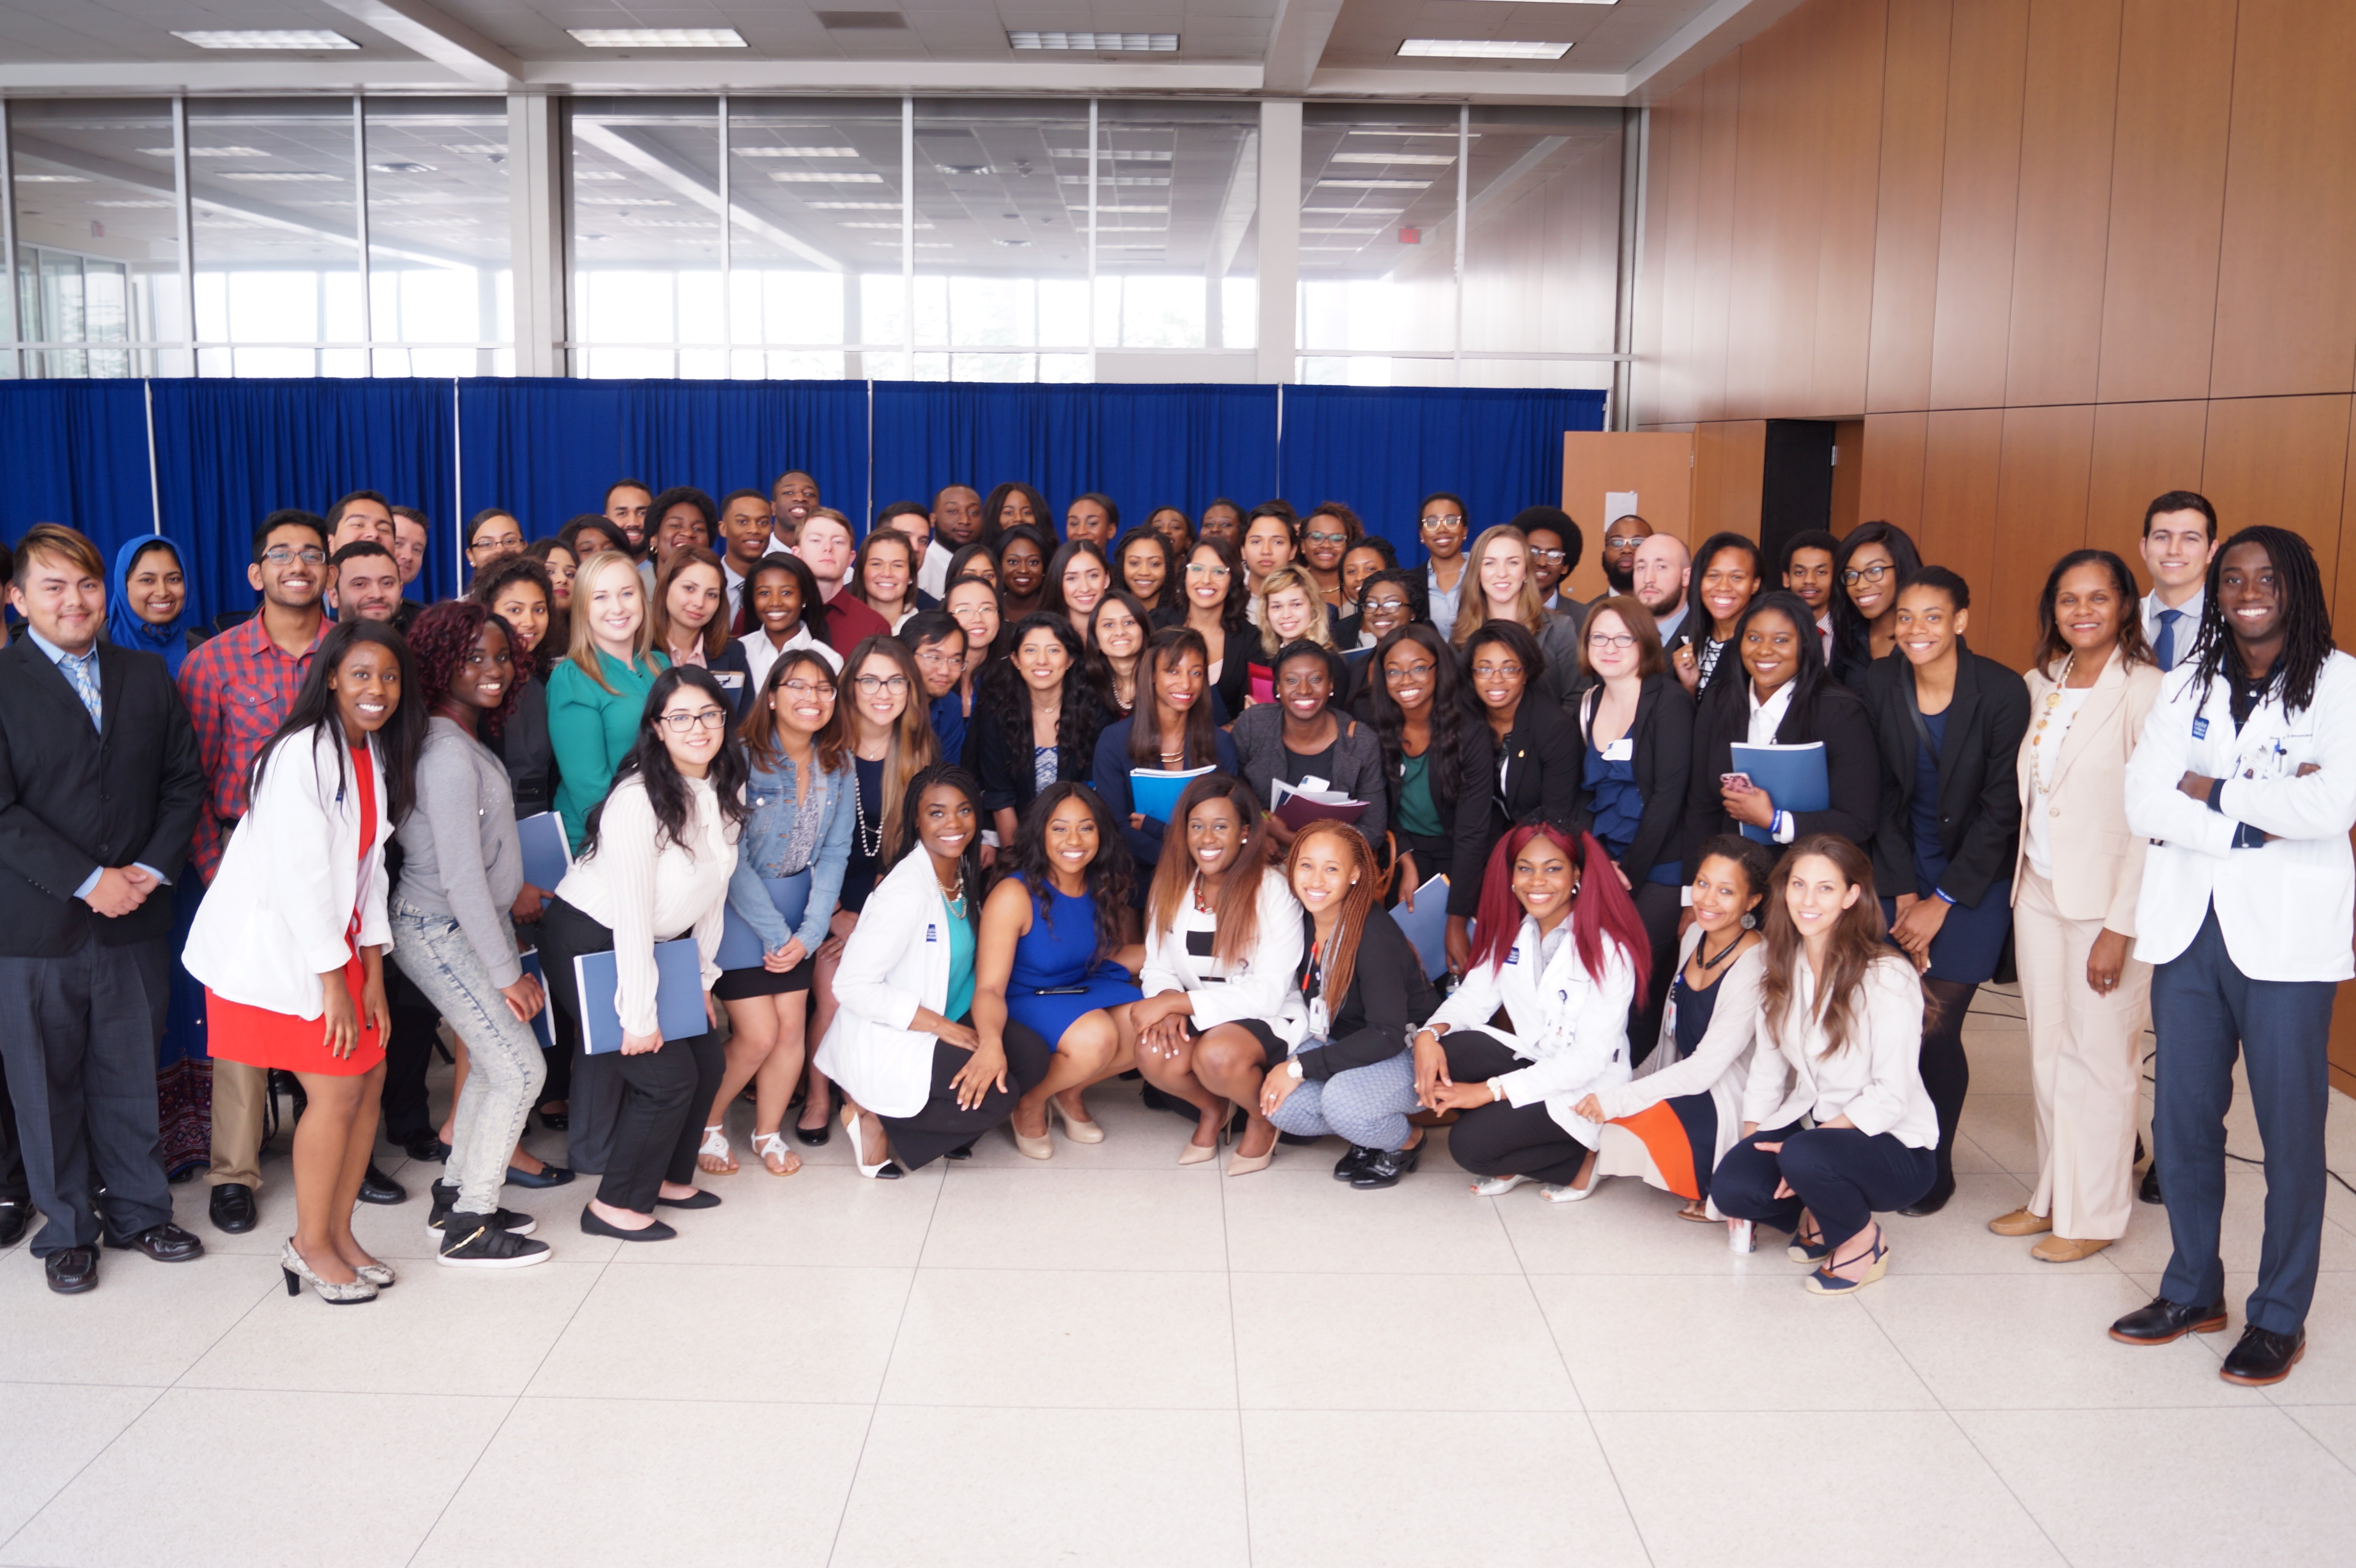 Group photo of the attendees for the 2017 Diversity Admissions Symposium